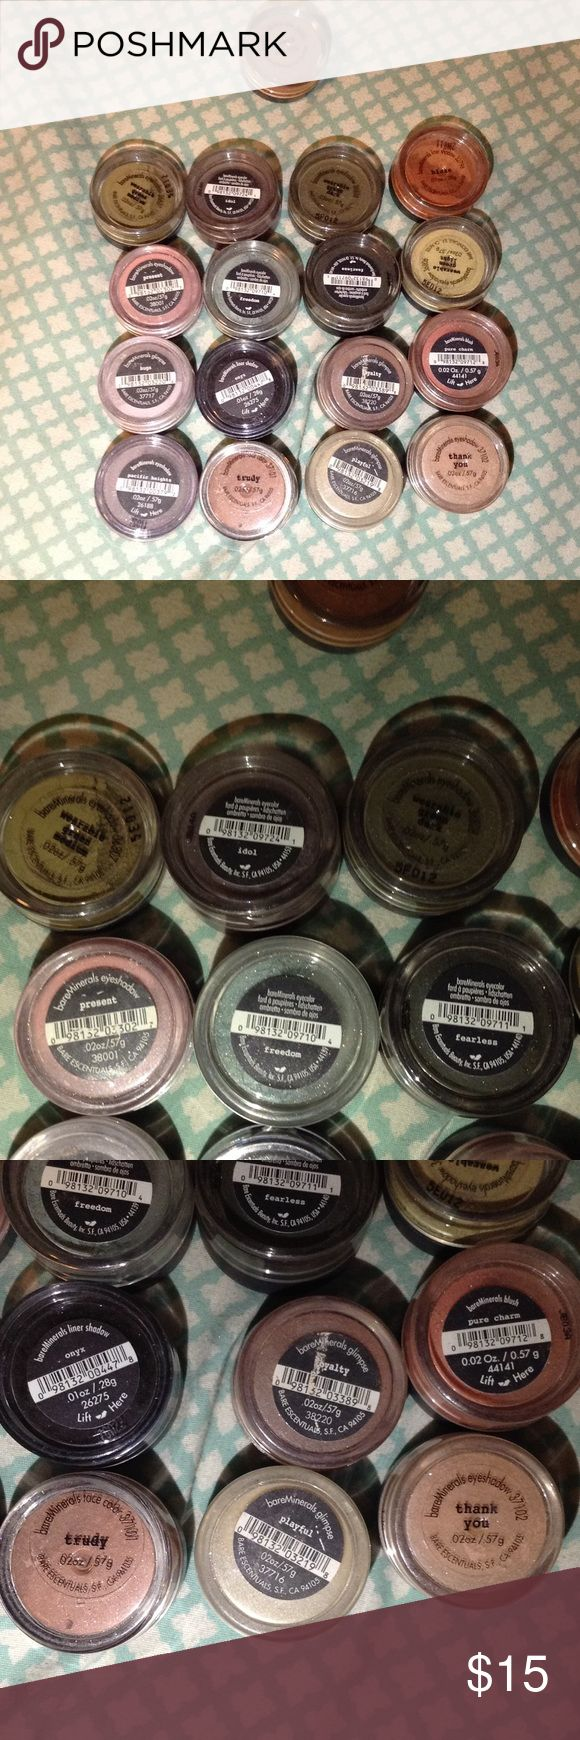 BARE MINERALS EYESHADOW BUNDLE Includes 16 eye shadows plus 1 warmth for the face. If they have been used it is very little! Feel free to make me an offer bareMinerals Makeup Eyeshadow